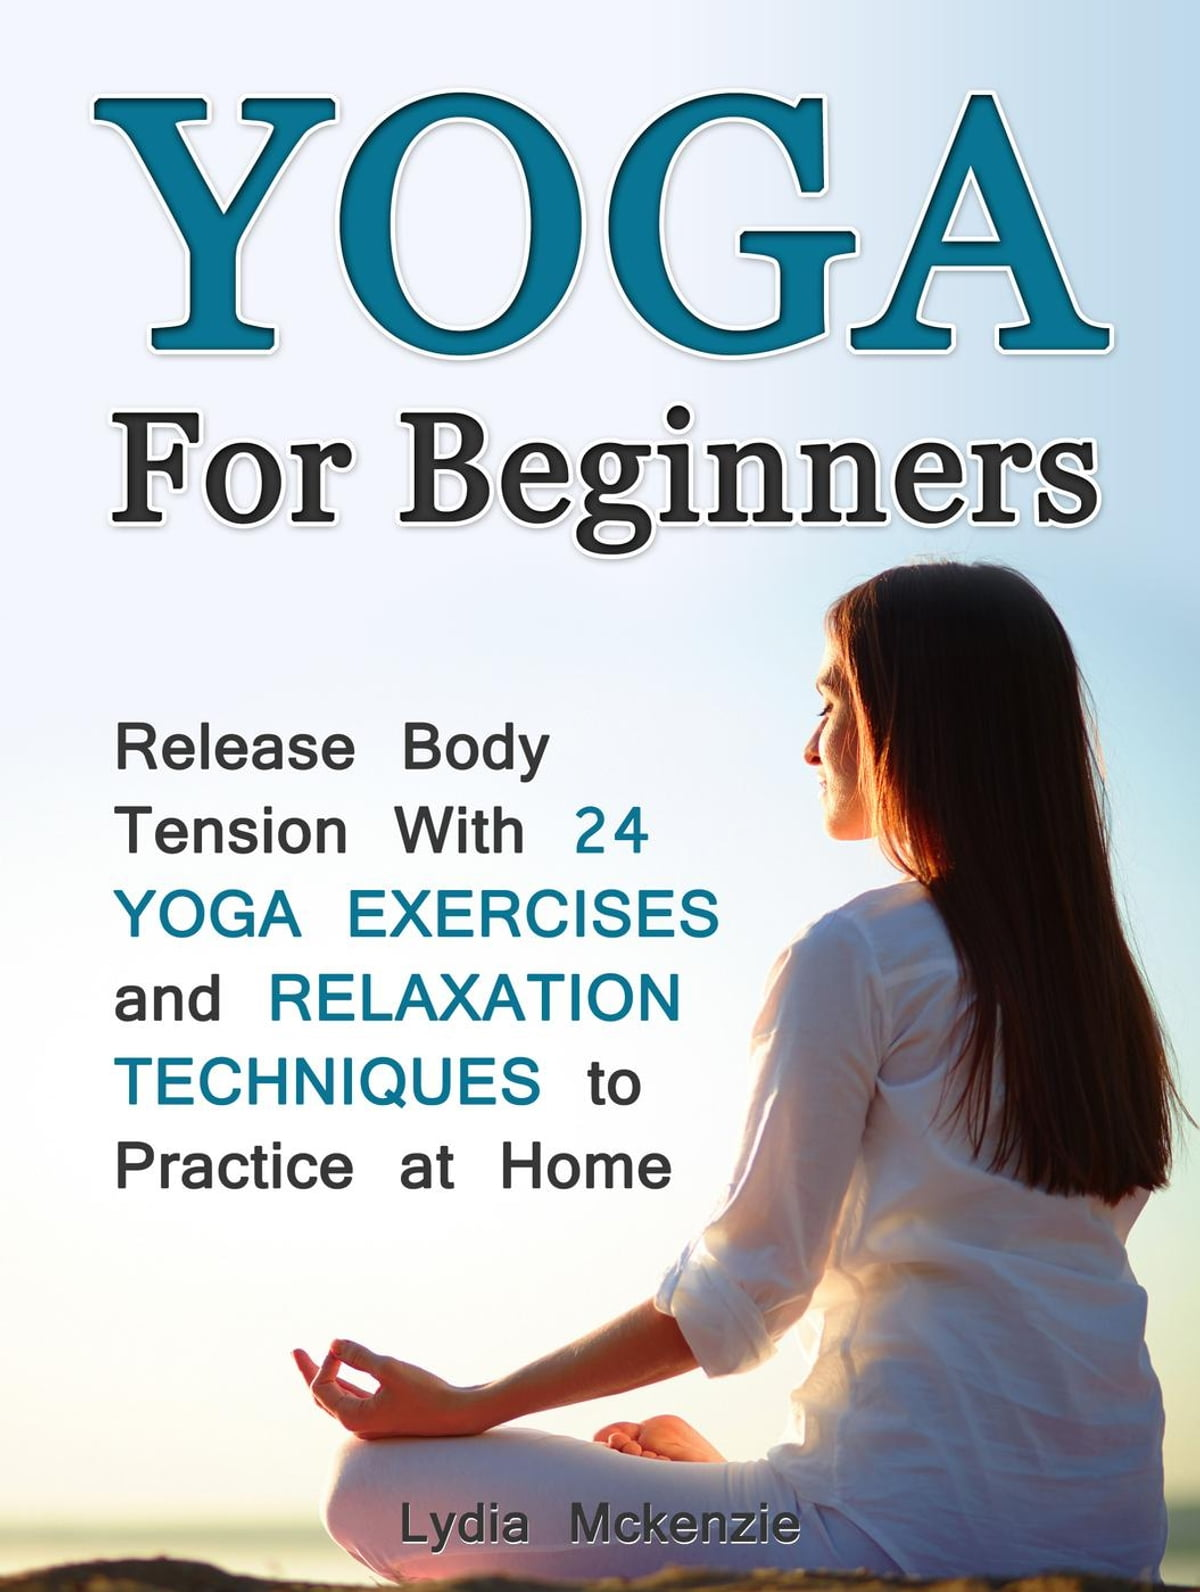 Yoga For Beginners Release Body Tension With 24 Yoga Exercises And Relaxation Techniques To Practice At Home Ebook By Lydia Mckenzie 9781386229001 Rakuten Kobo United States